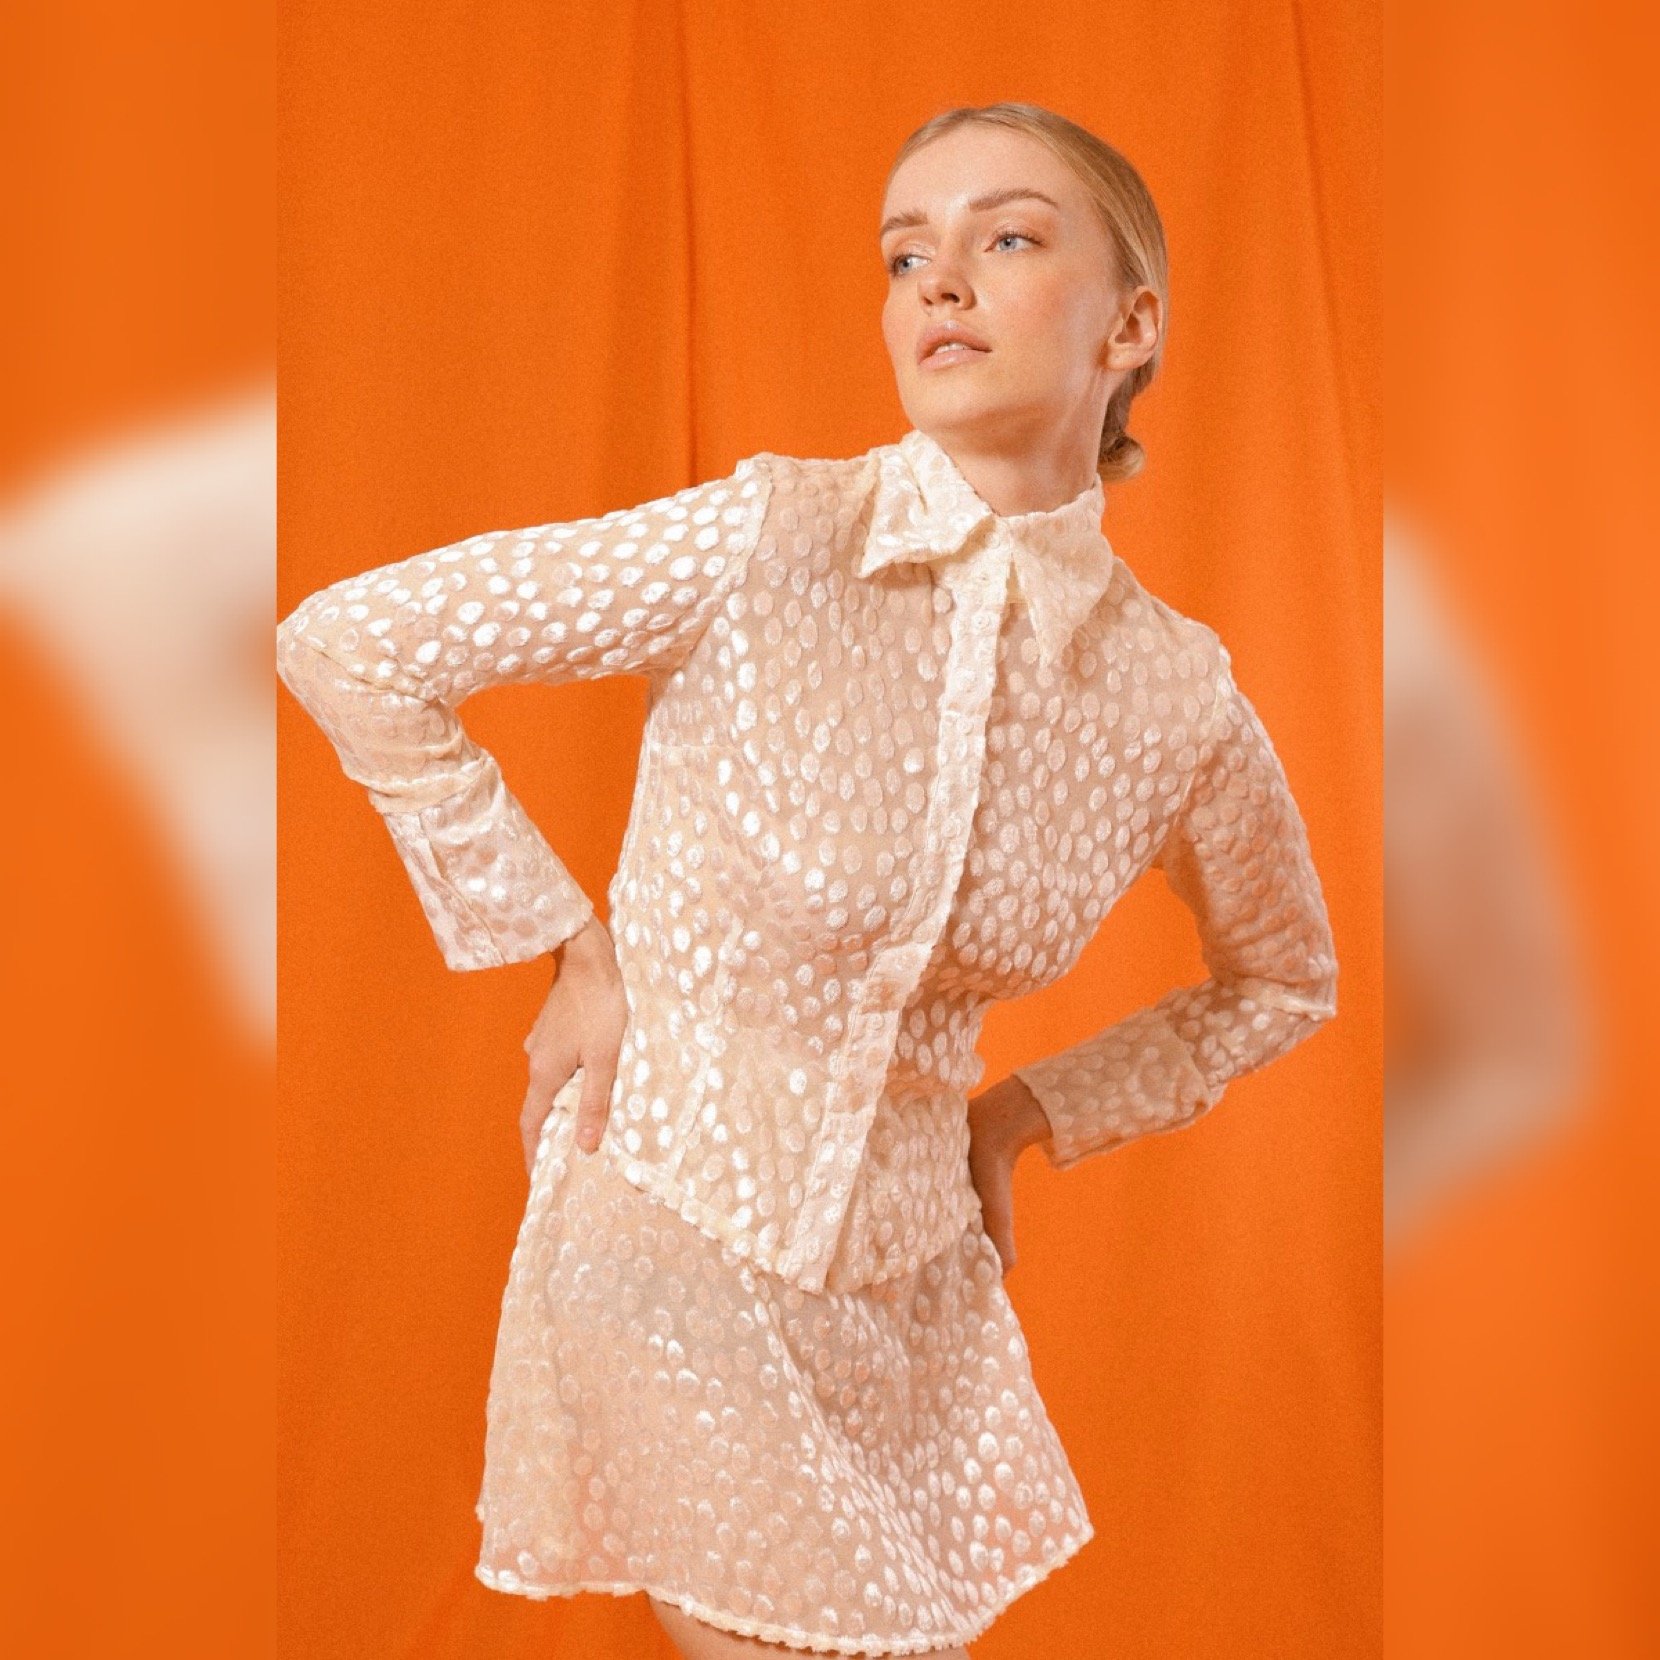 BELLISI BUTTON-UP SHIRT in CREAM SILK EMBROIDERED POLKA DOT by Saint Mojavi for use by 360 Magazine